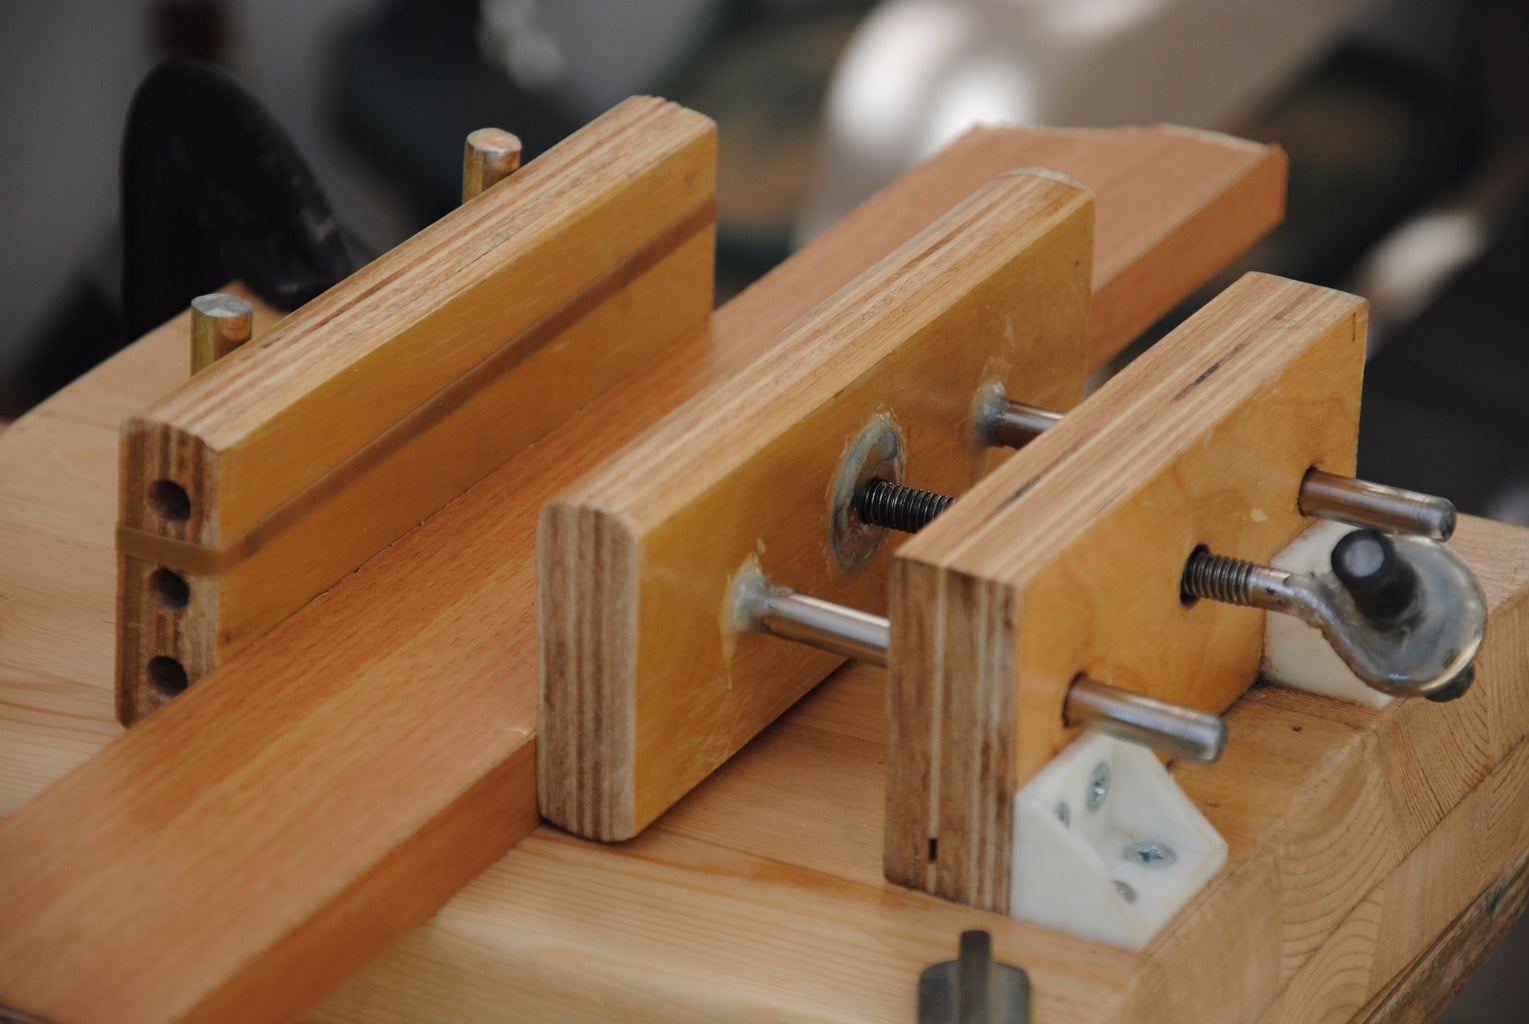 How to Use the Ultimate Homemade Wooden Vise